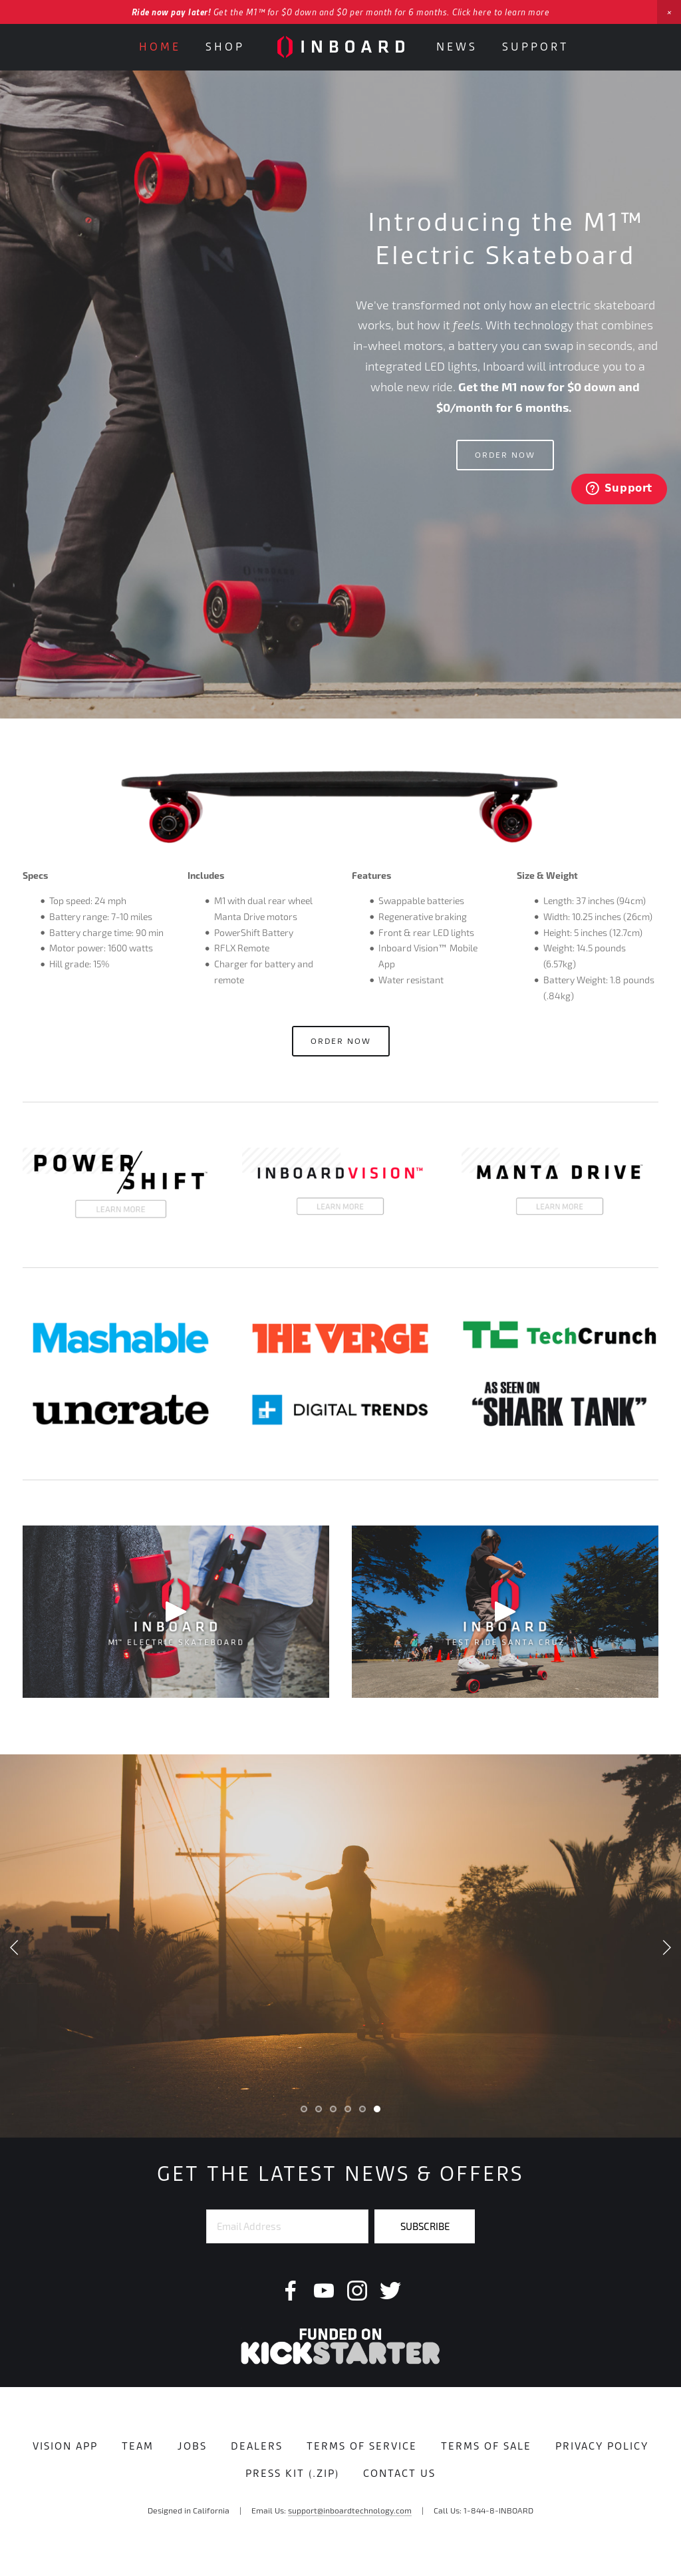 Inboard Shark Tank >> Inboard Skate Competitors Revenue And Employees Owler Company Profile